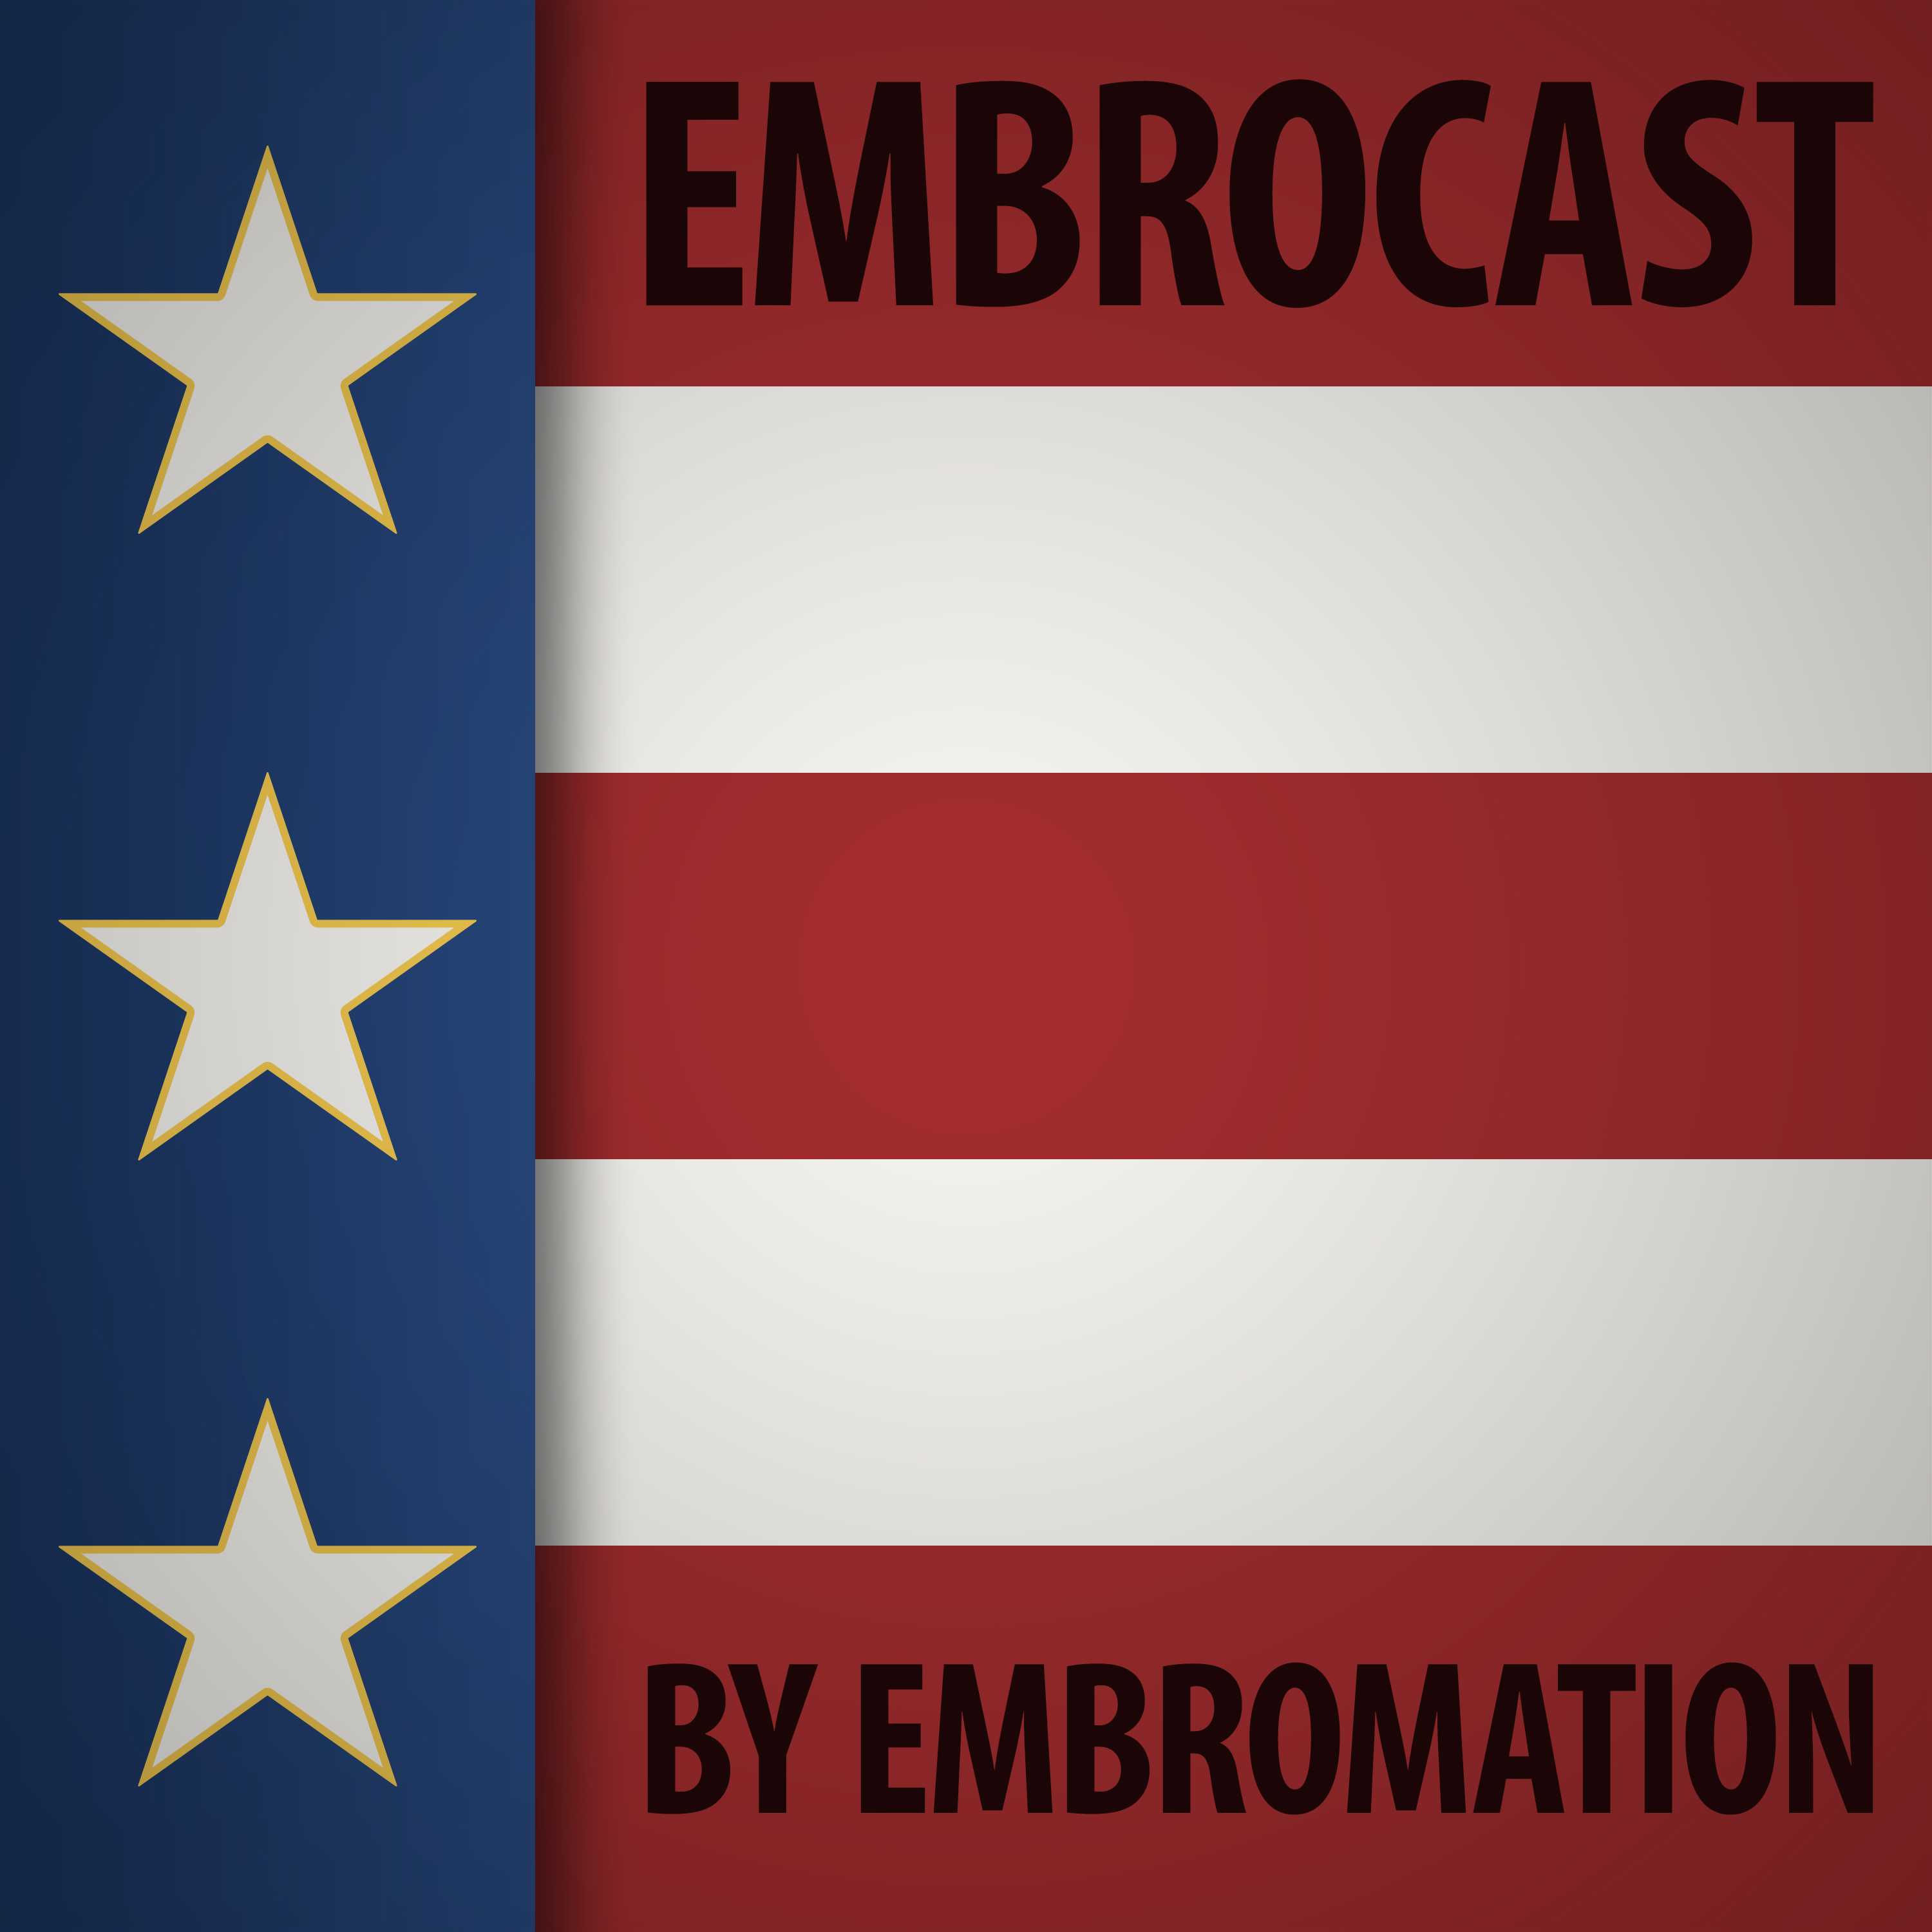 Embrocast by Embromation